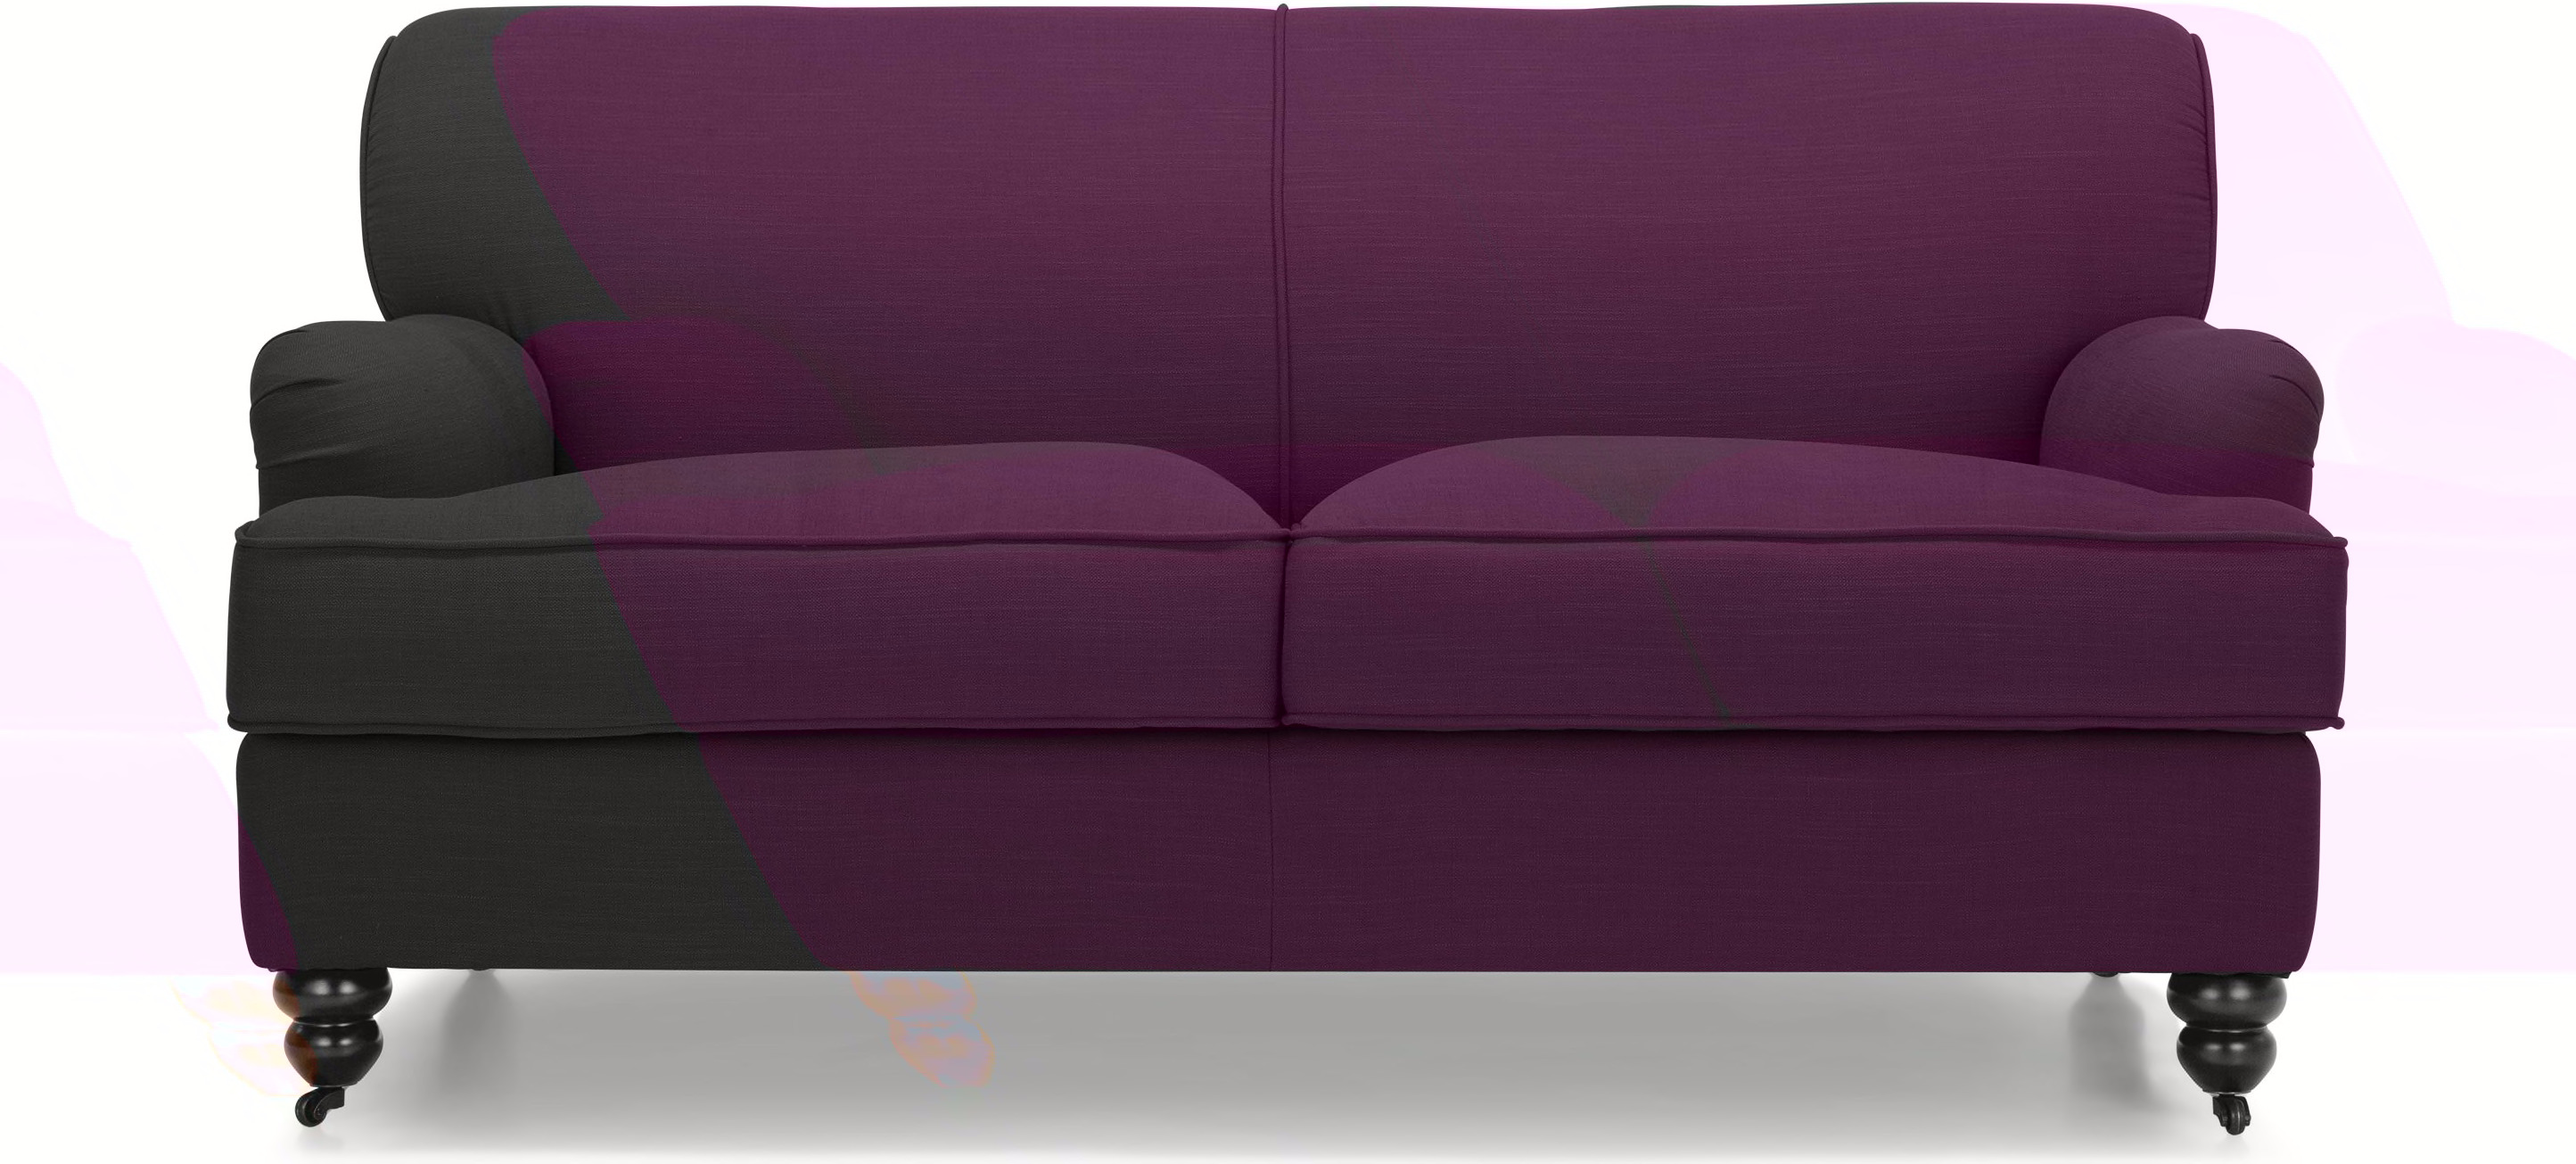 Orson 2 seater sofa, Pansy Purple